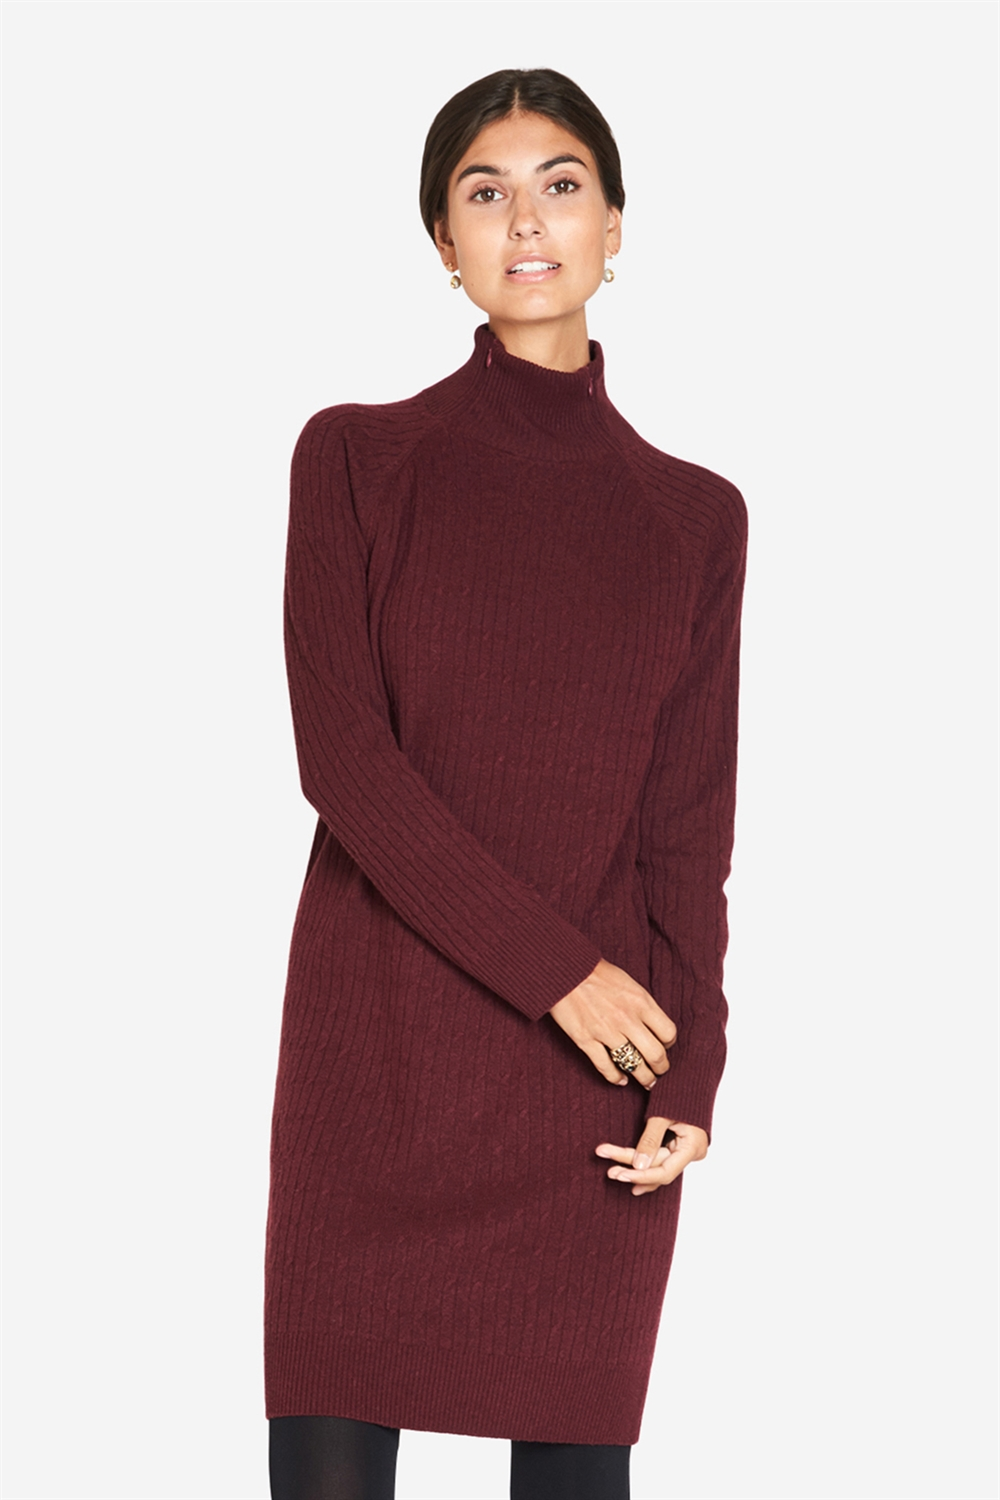 Bordeaux Dress with a high neck for breastfeeding